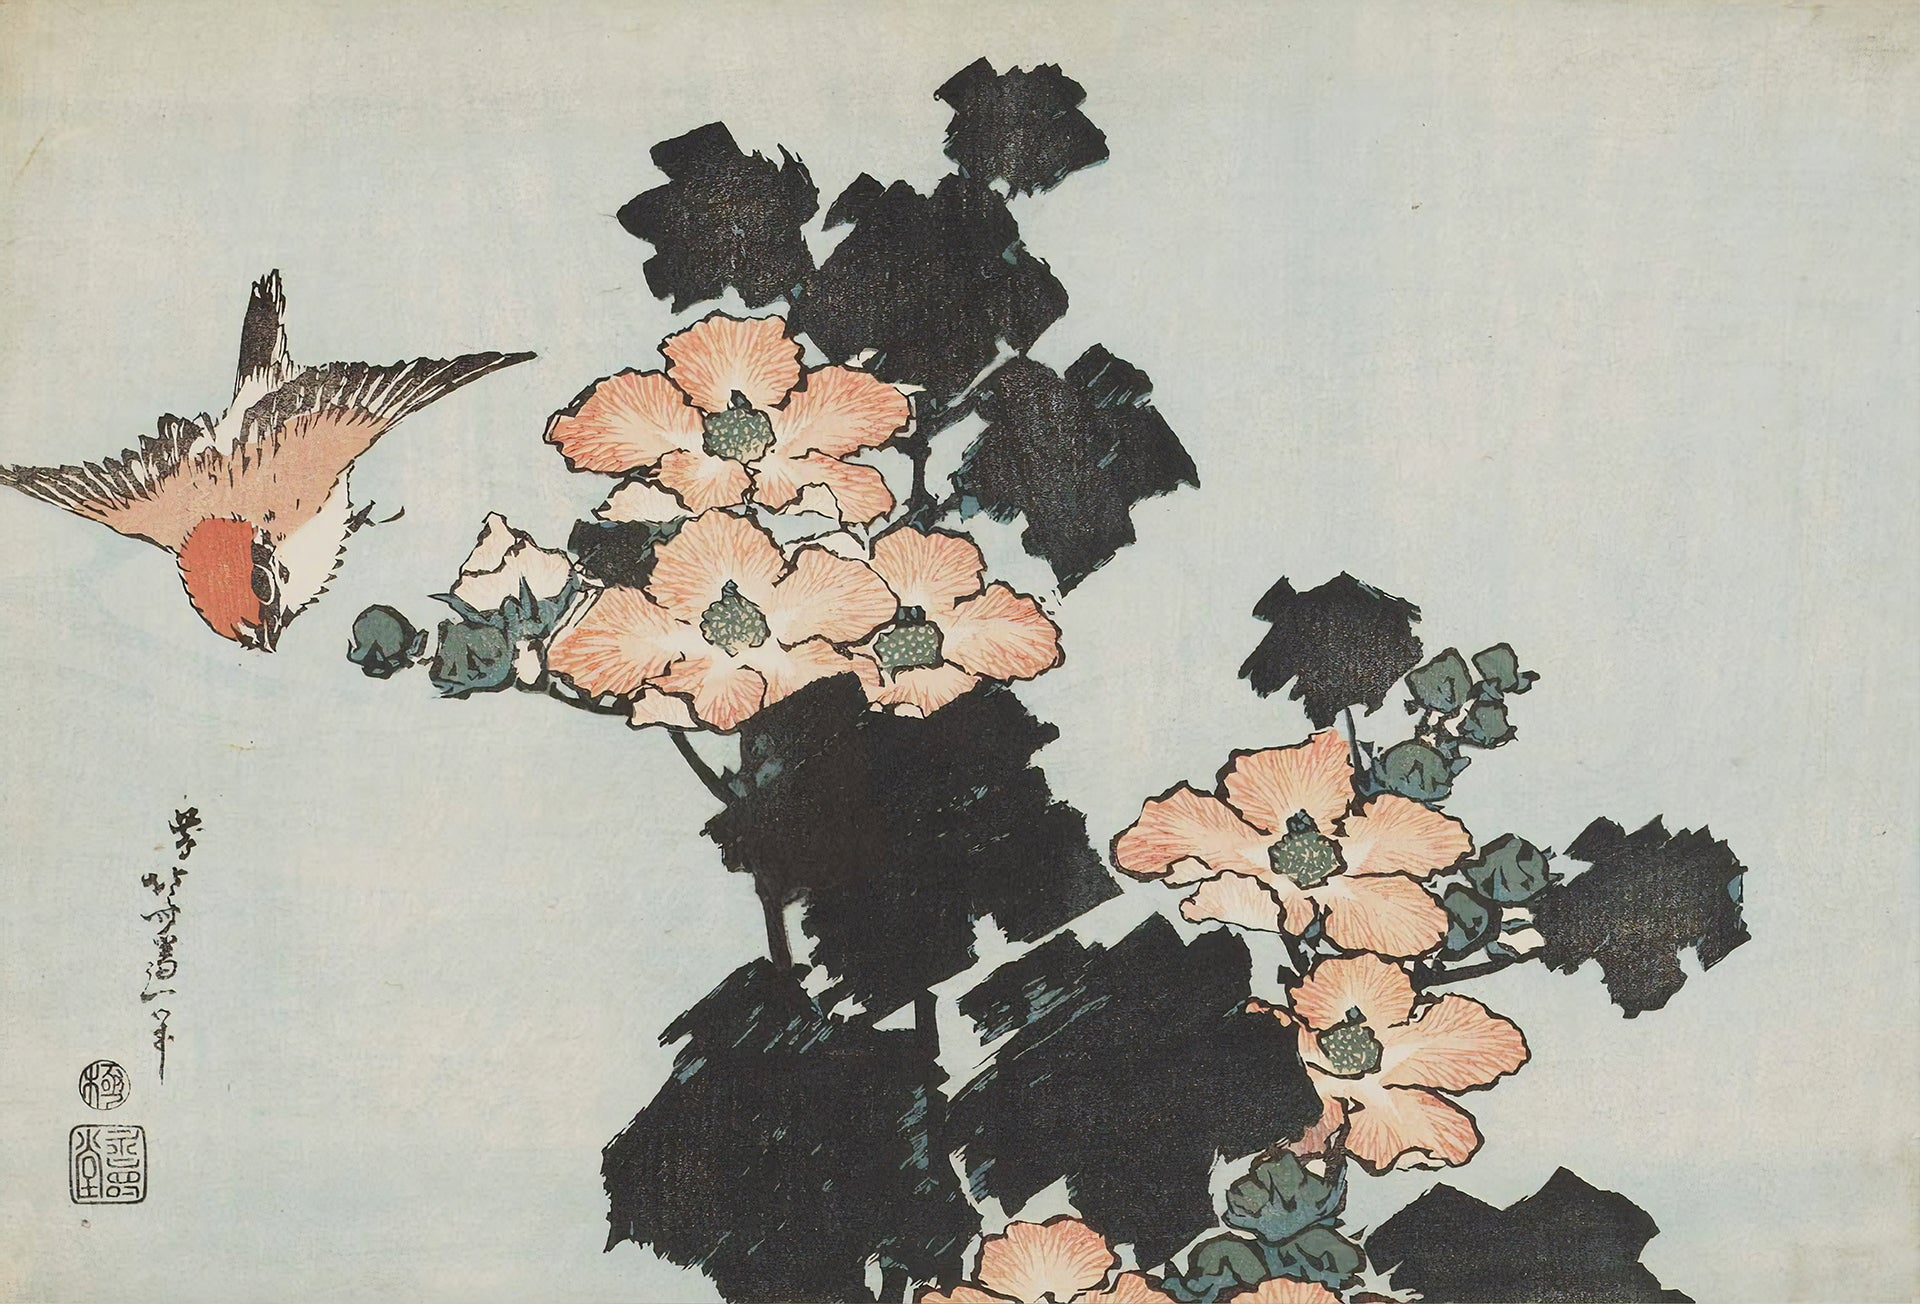 Hibiscus and Sparrow (1833) by Hokusai